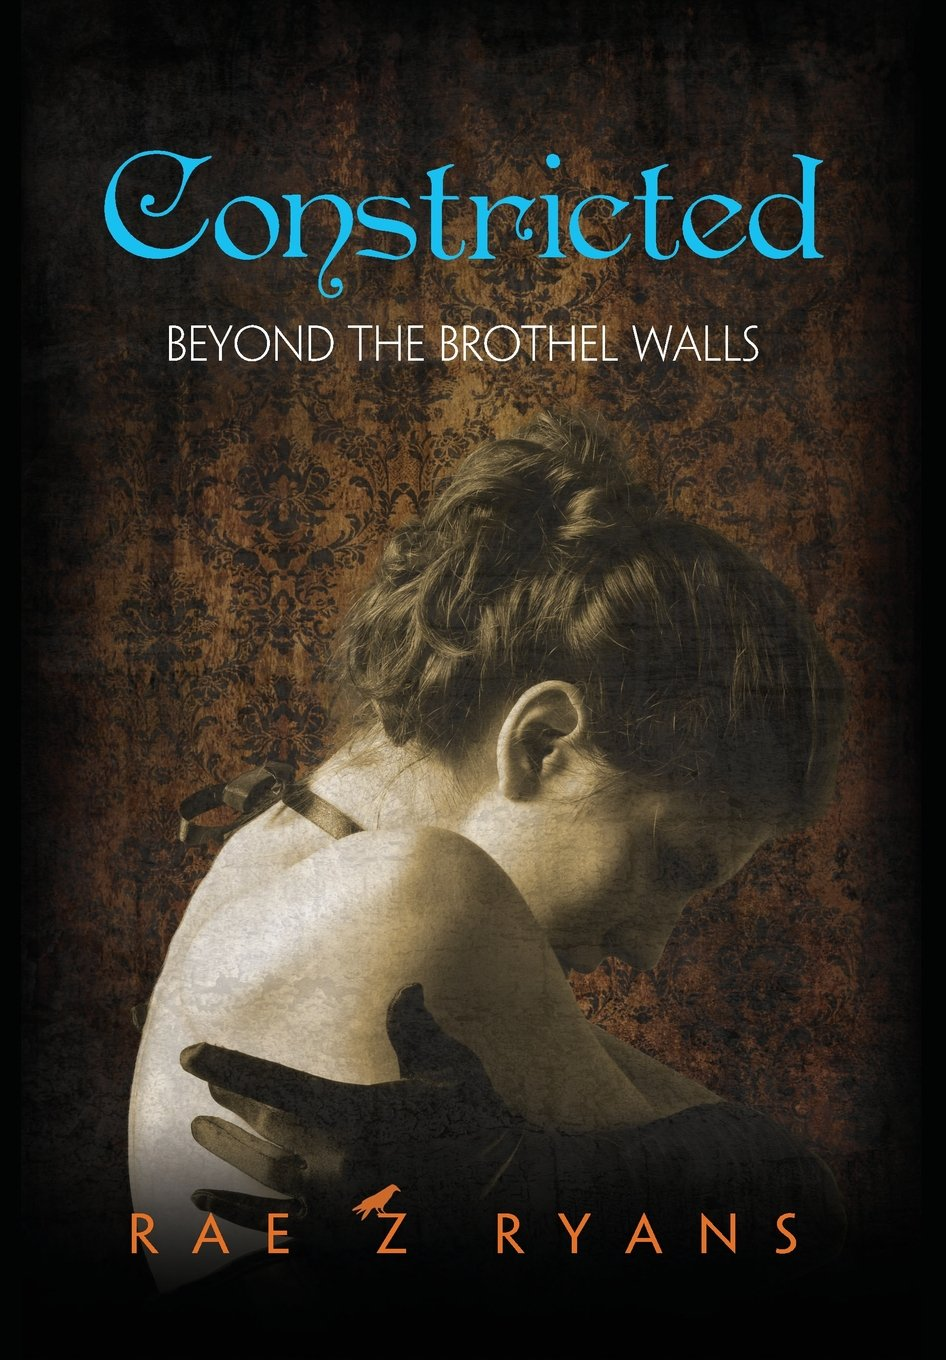 Constricted: Beyond the Brothel Walls pdf